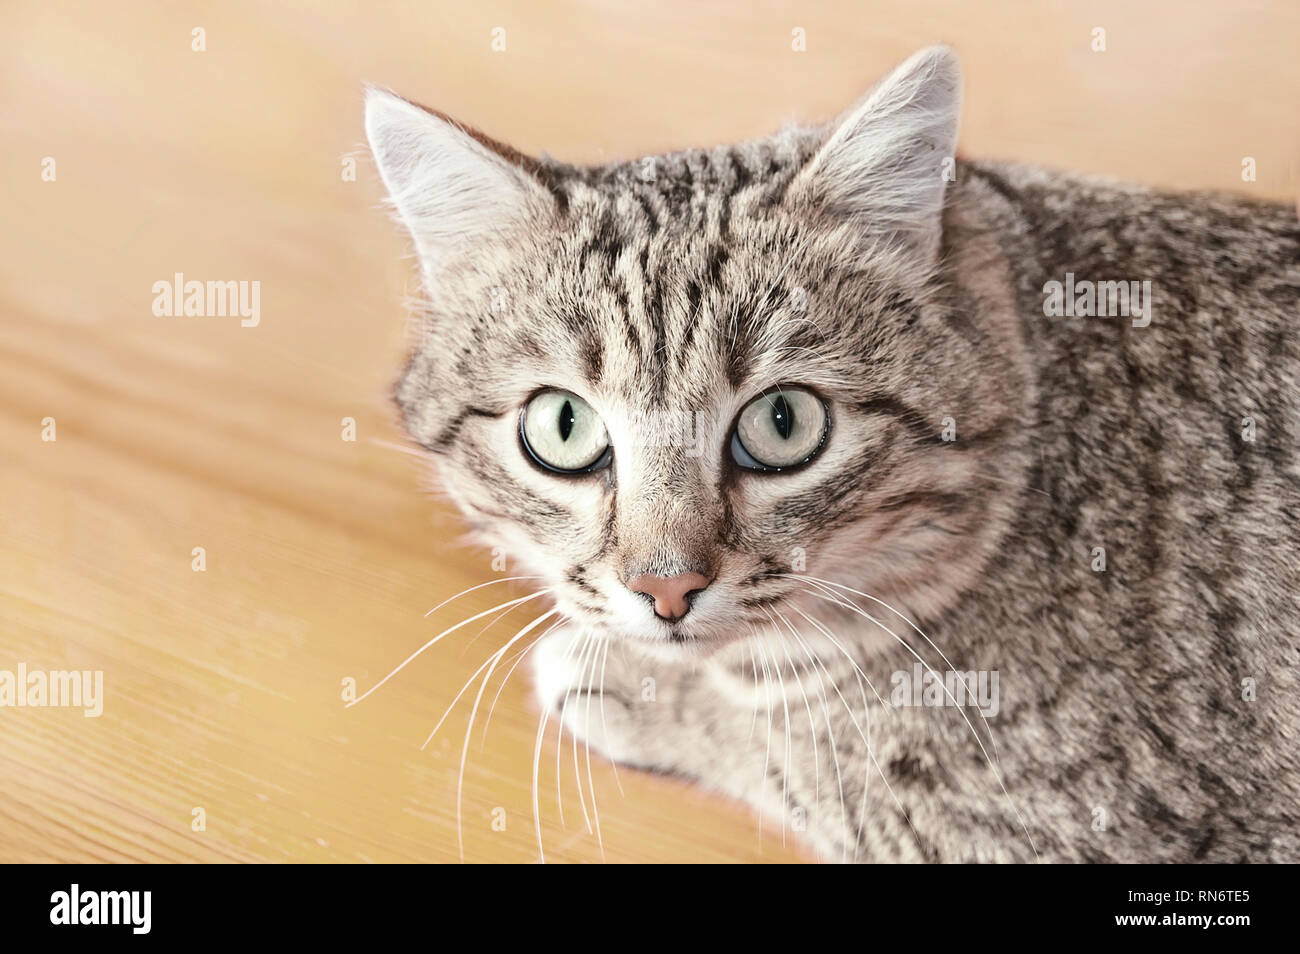 Tabby male cat looking with distrust and a little scared. Cat looks into the lens. Portrait of Tabby cat on floor background. - Stock Image